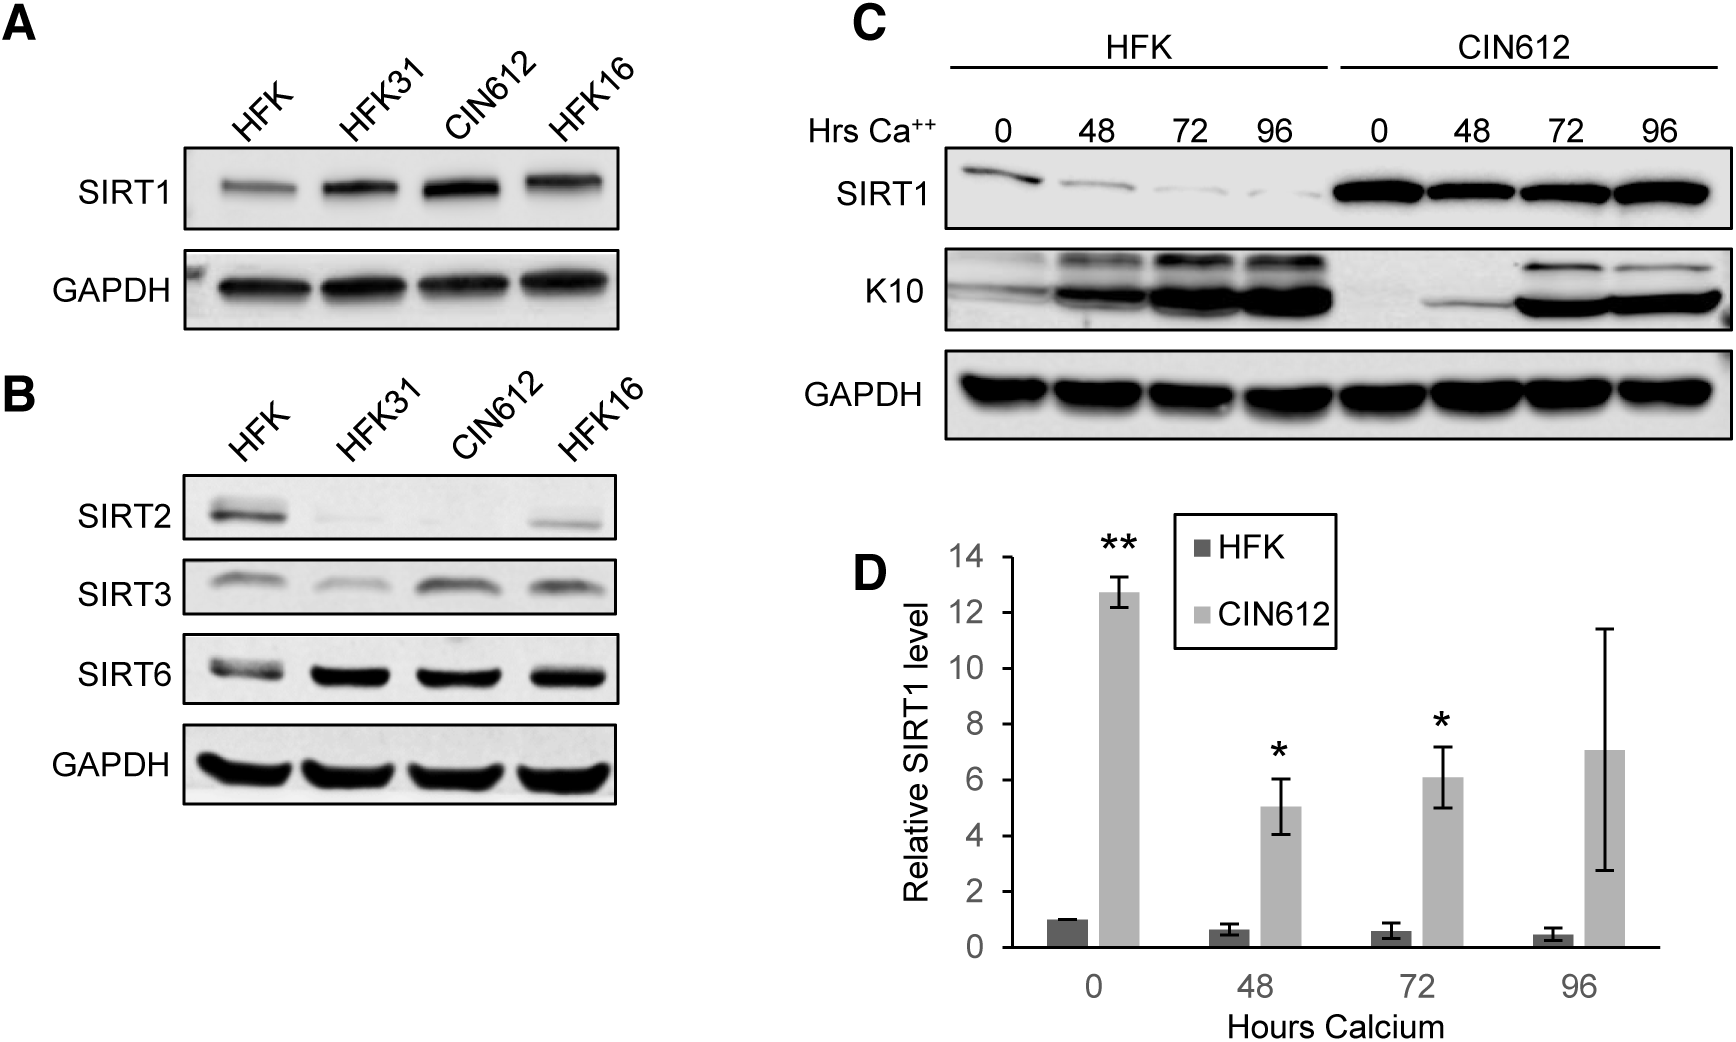 HPV induces overexpression of SIRT1 throughout keratinocyte differentiation.